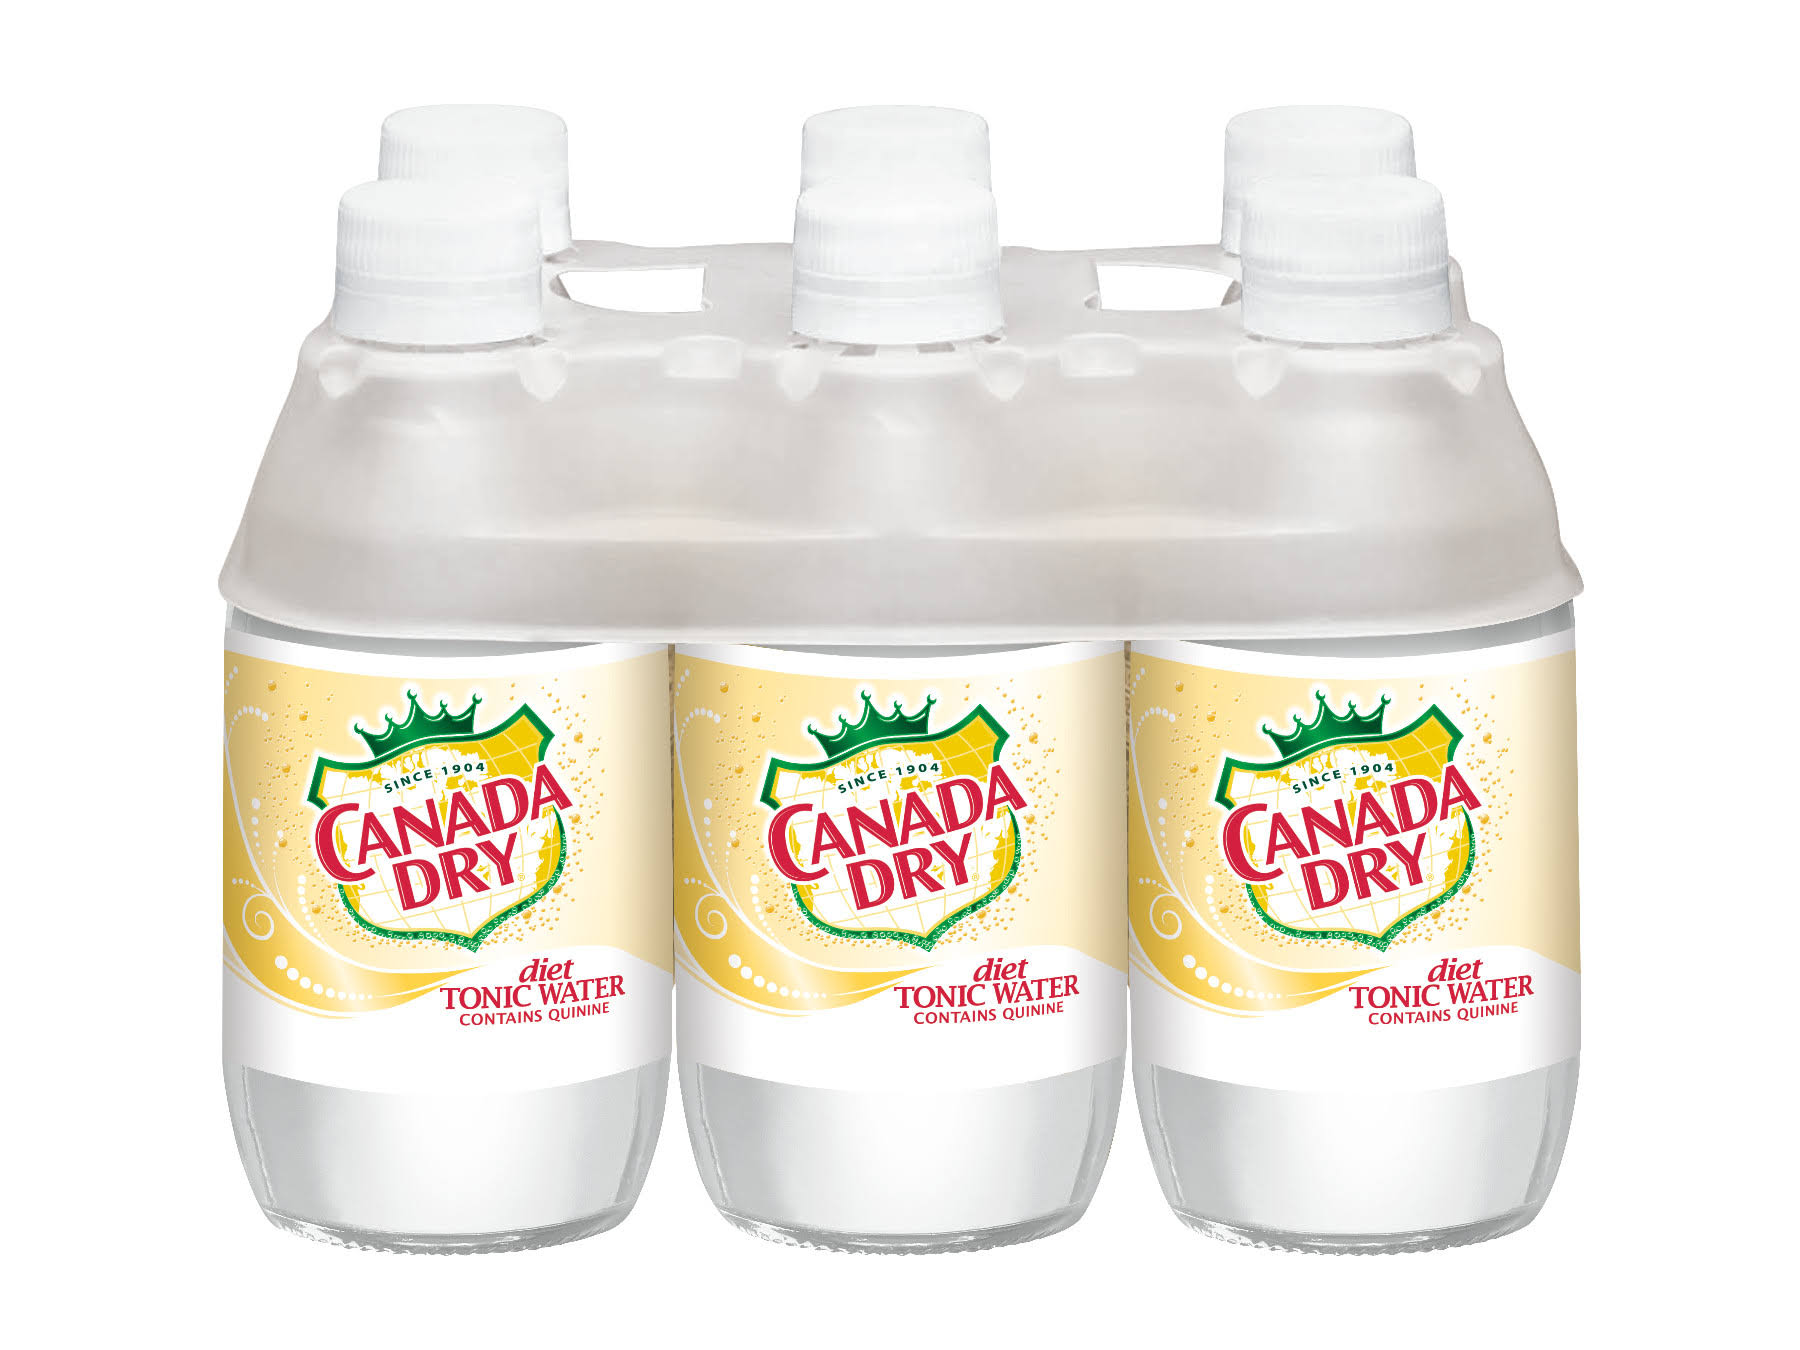 Canada Dry Diet Tonic Water - 10 fl oz